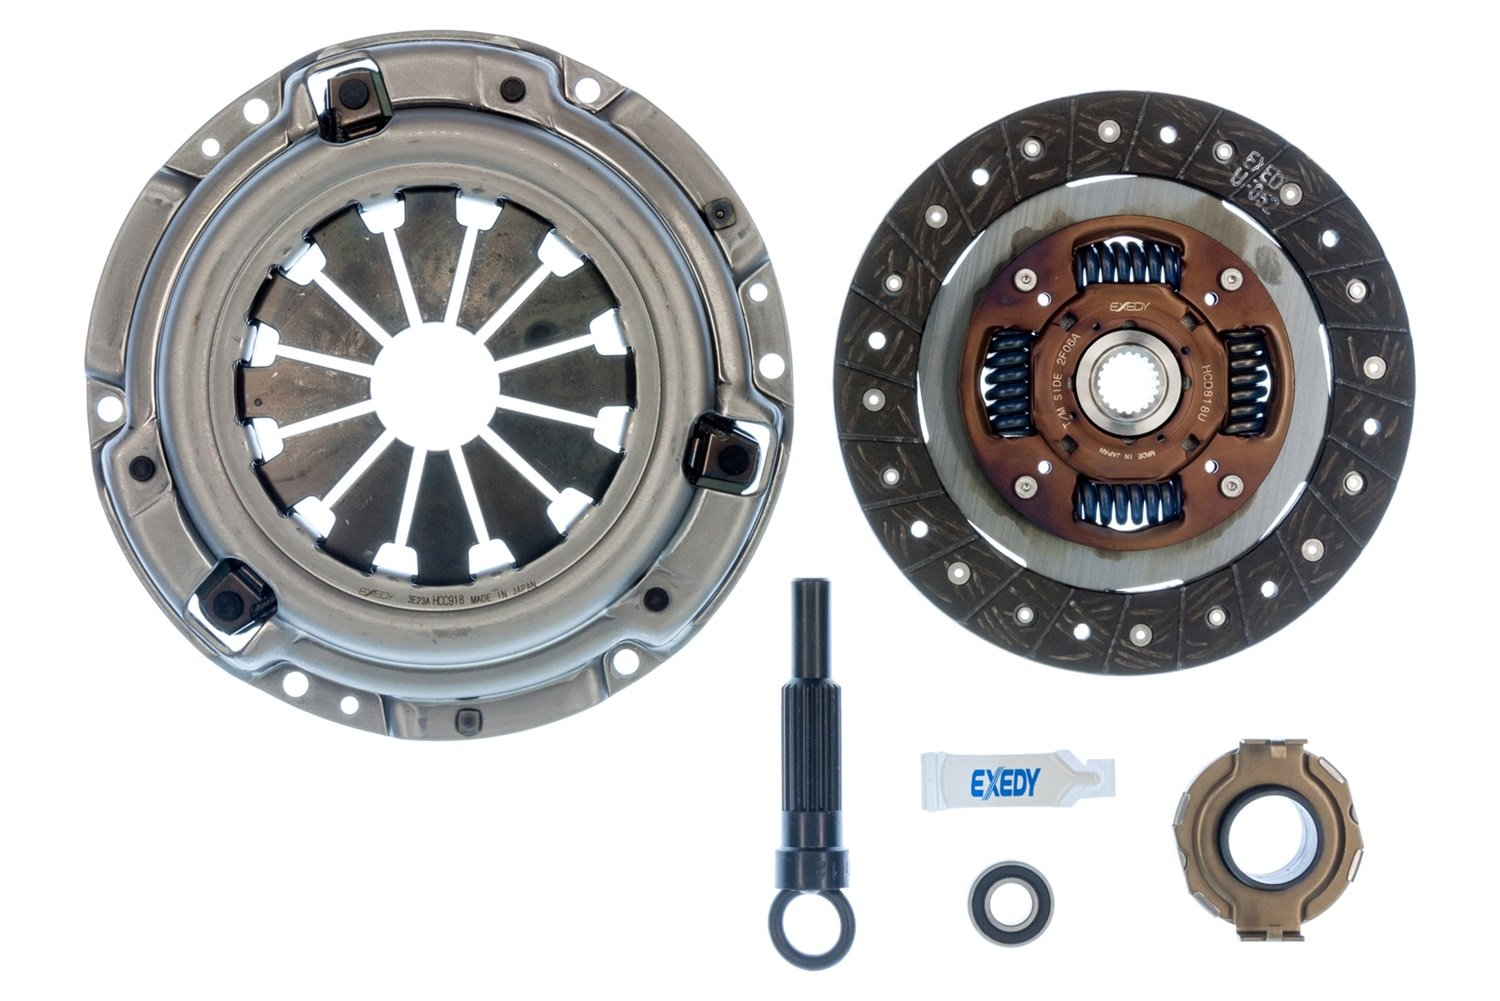 EXEDY KHC08 OEM Replacement Clutch Kit Exedy Racing Clutch